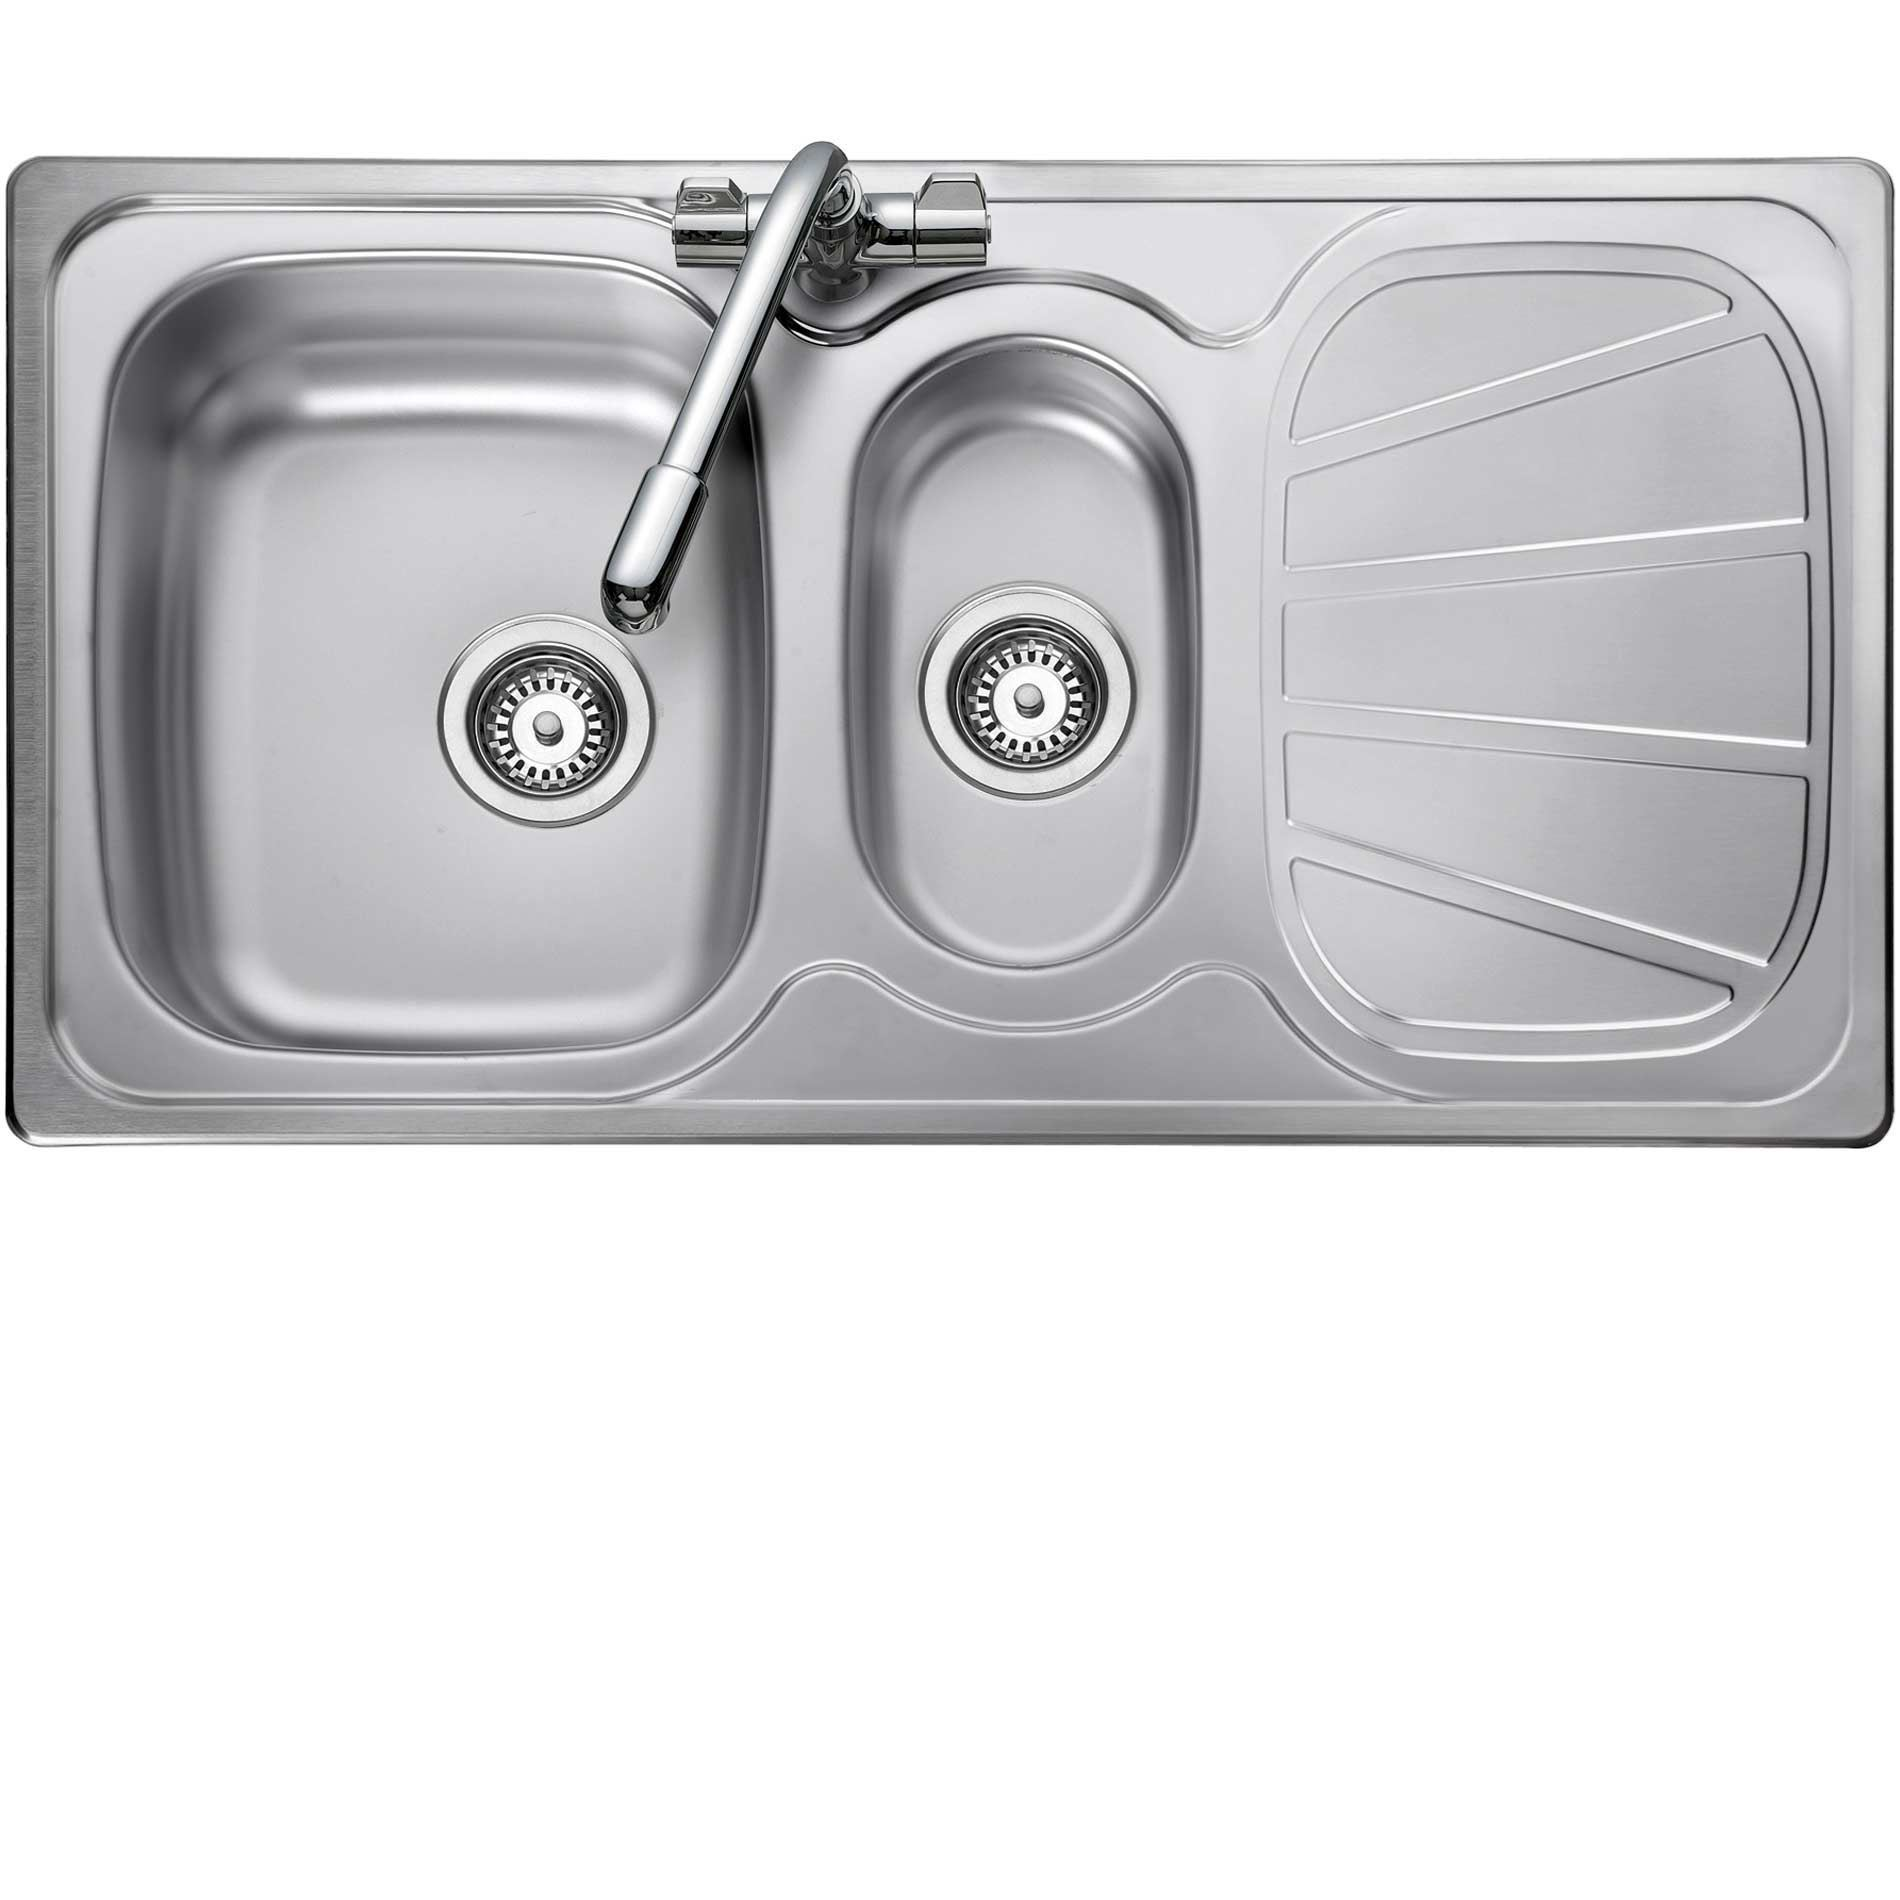 Picture of Baltimore BL9502 Stainless Steel Sink